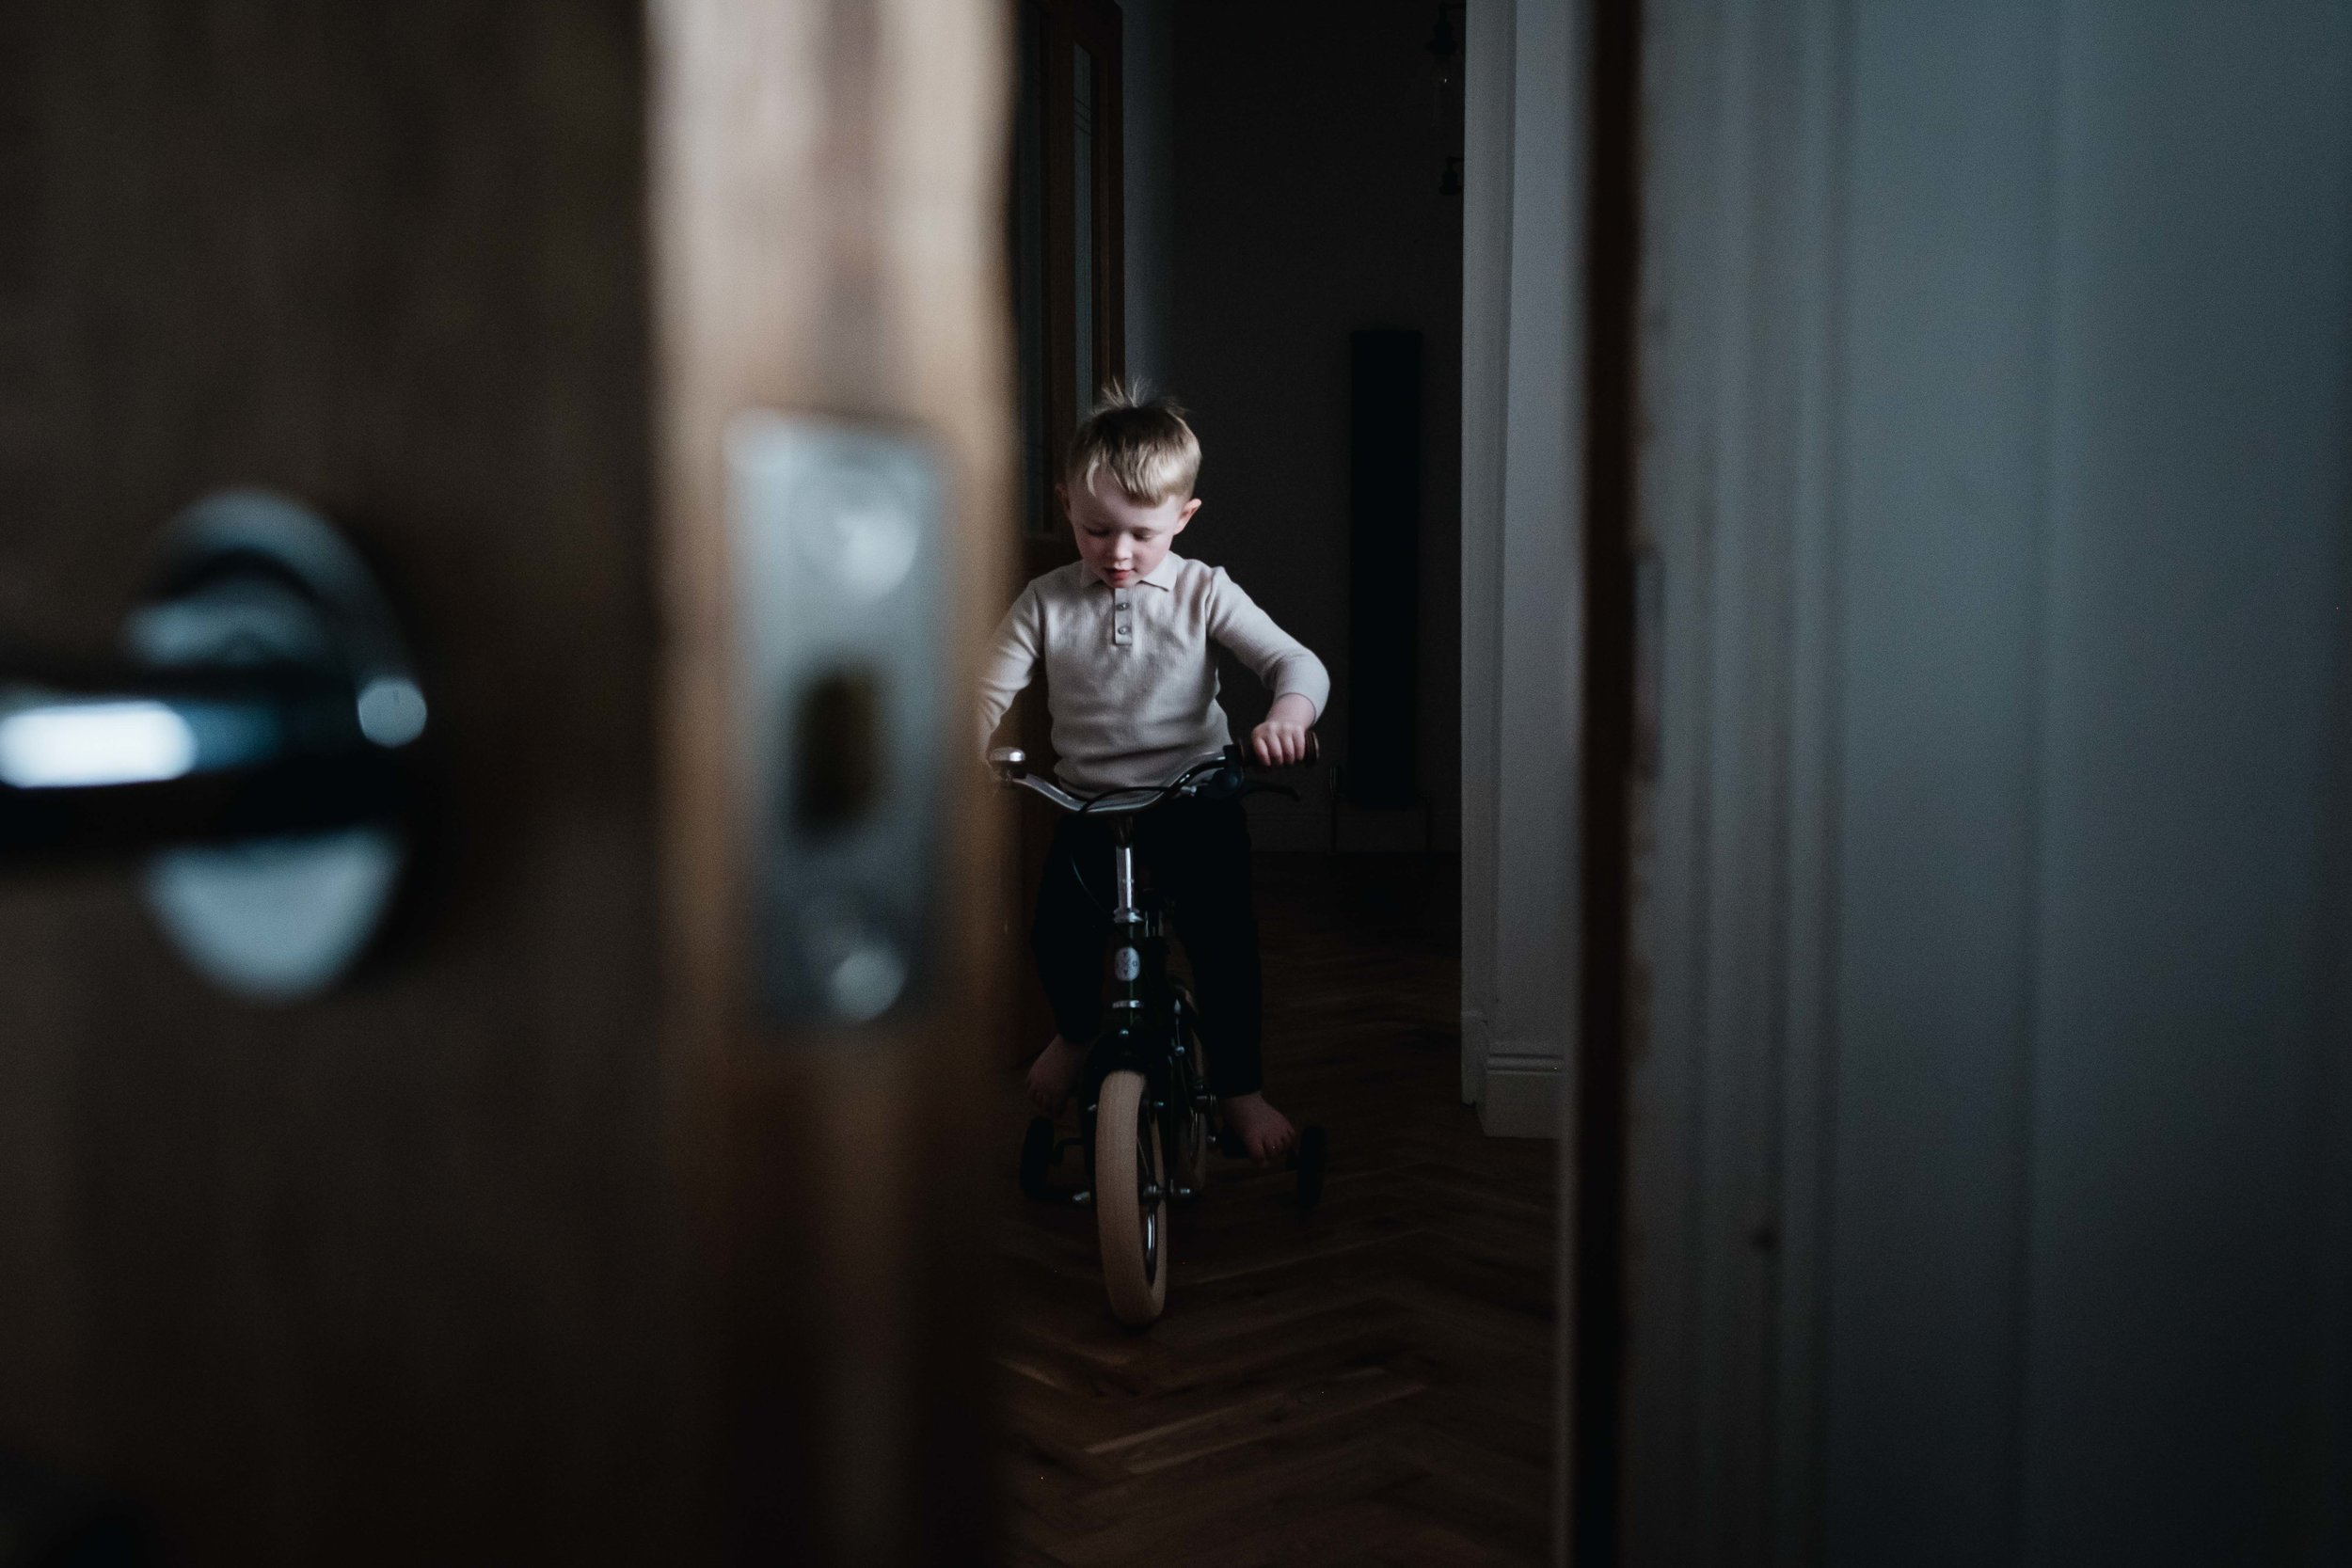 a young boy is riding his vintage bike in his family home